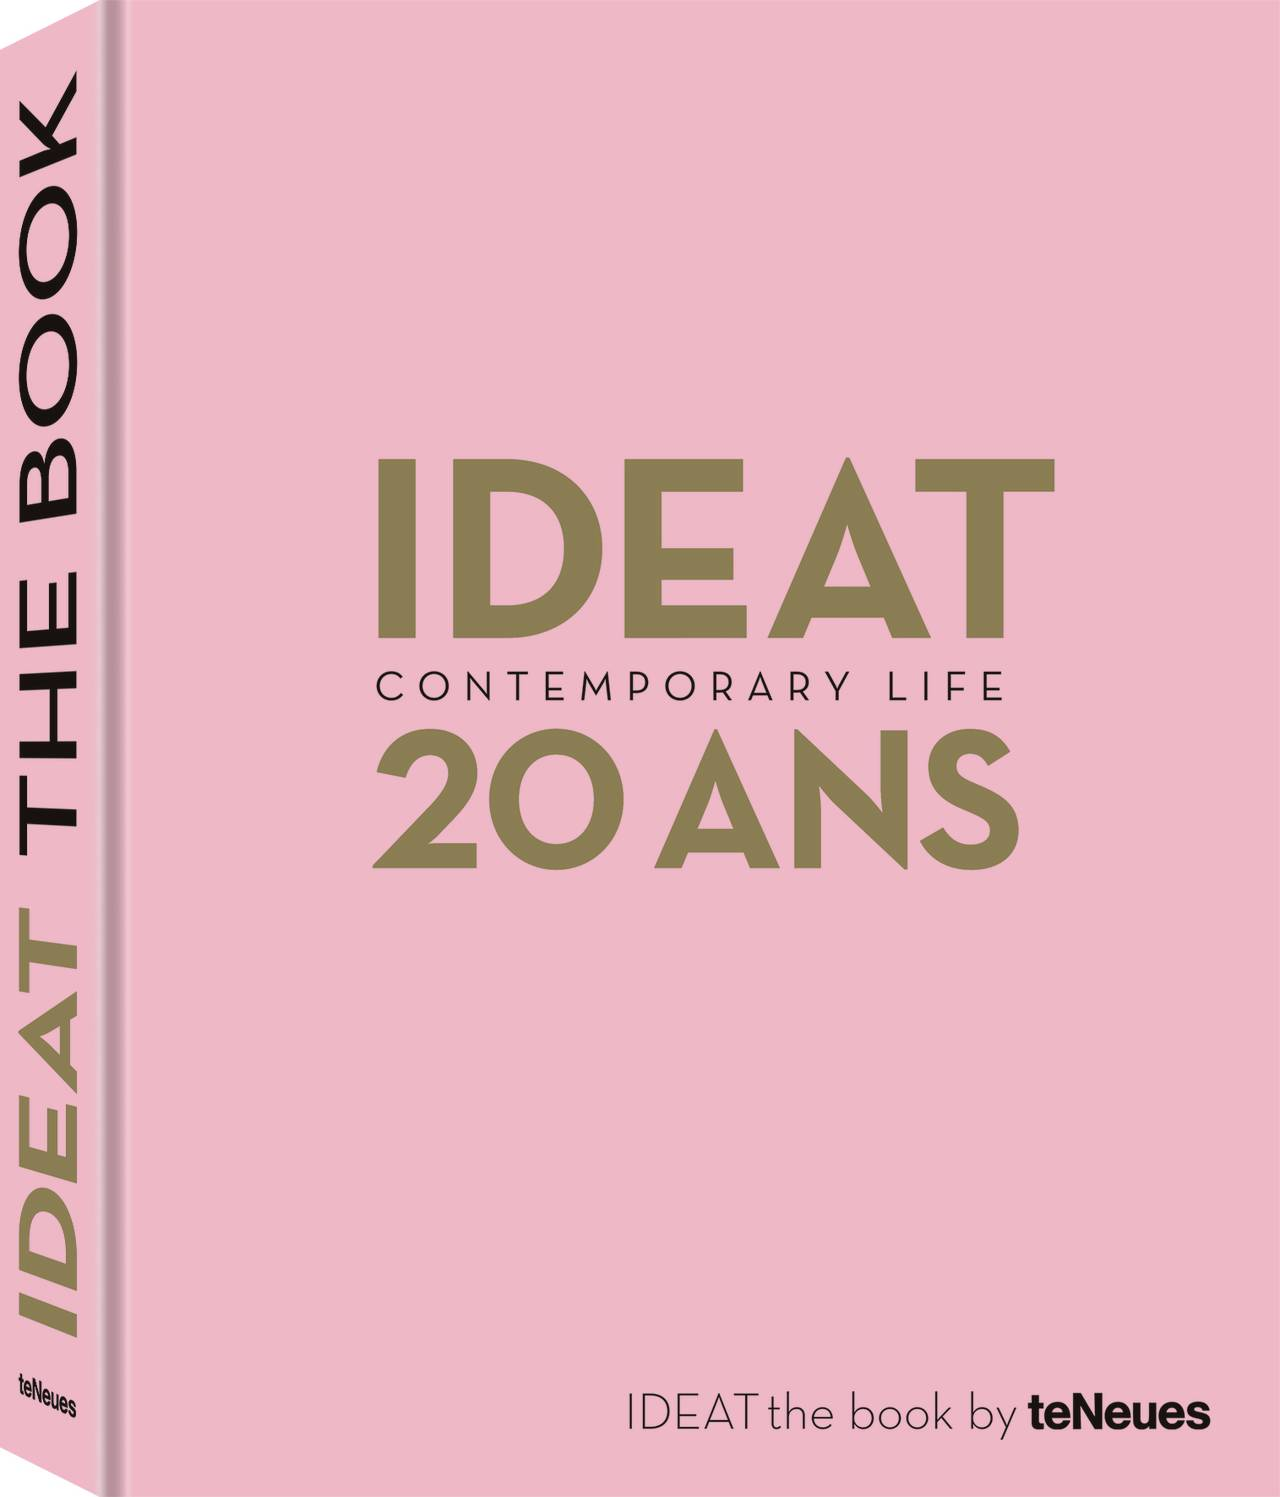 © IDEAT 20 ANS - CONTEMPORARY LIFE, published by teNeues, www.teneues.com, Photo © 2019 IDEAT. All rights reserved.